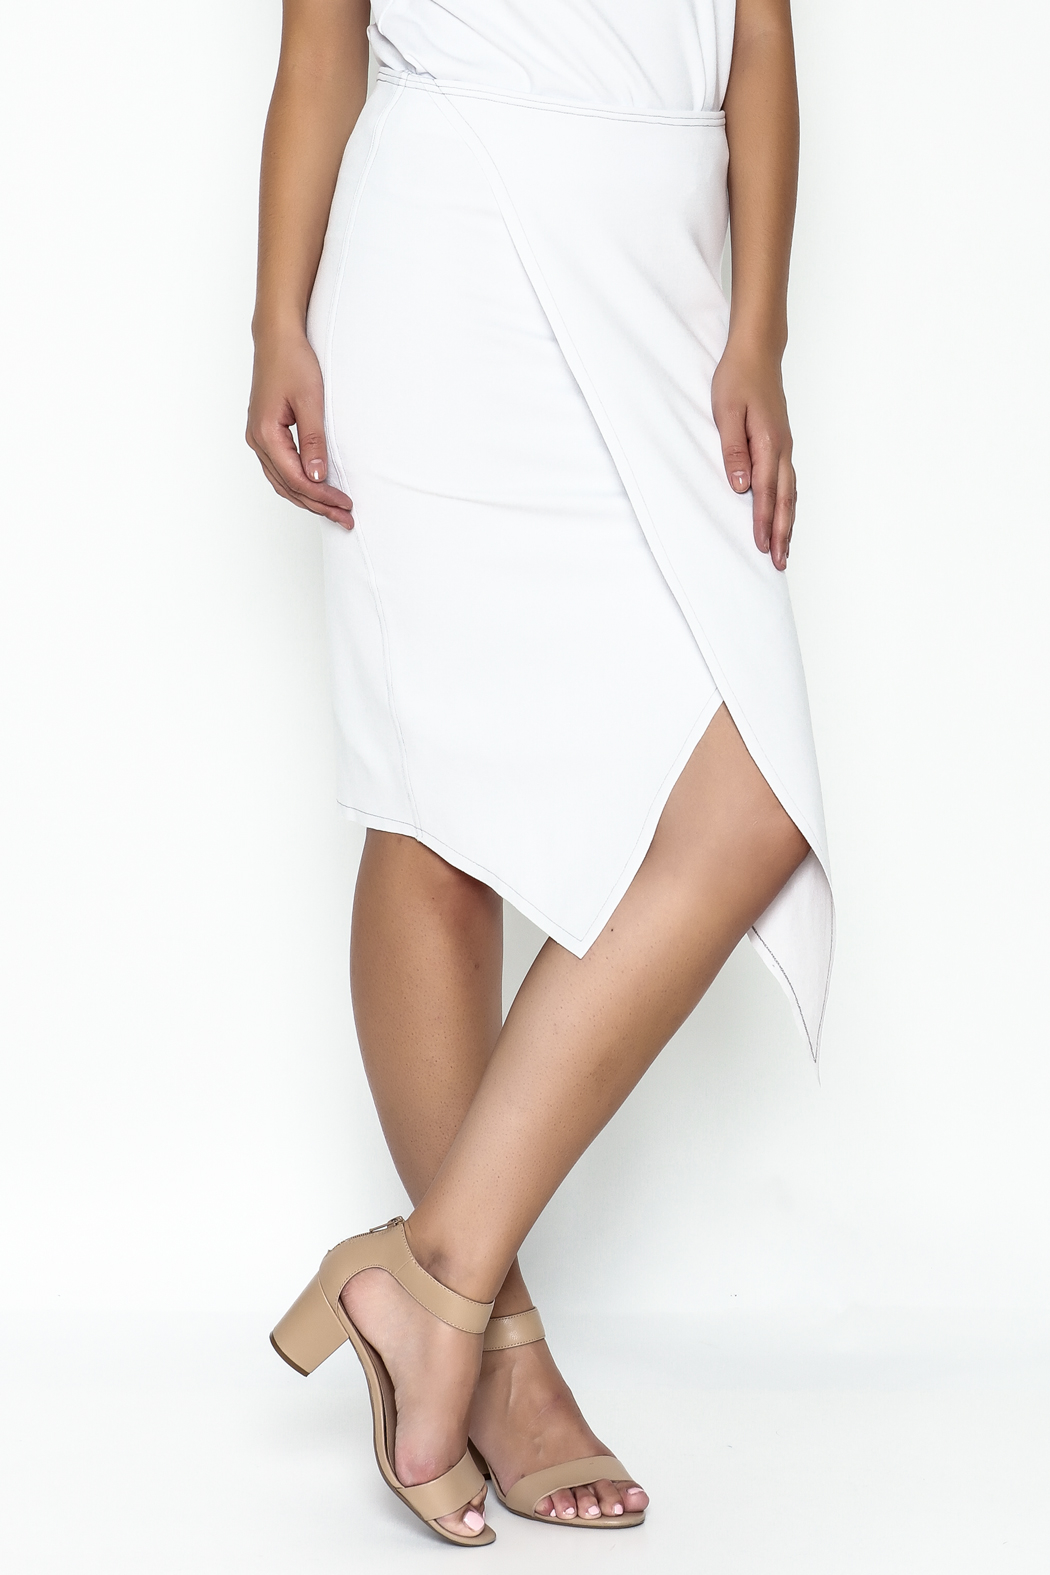 Vertex Dina Skirt - Main Image